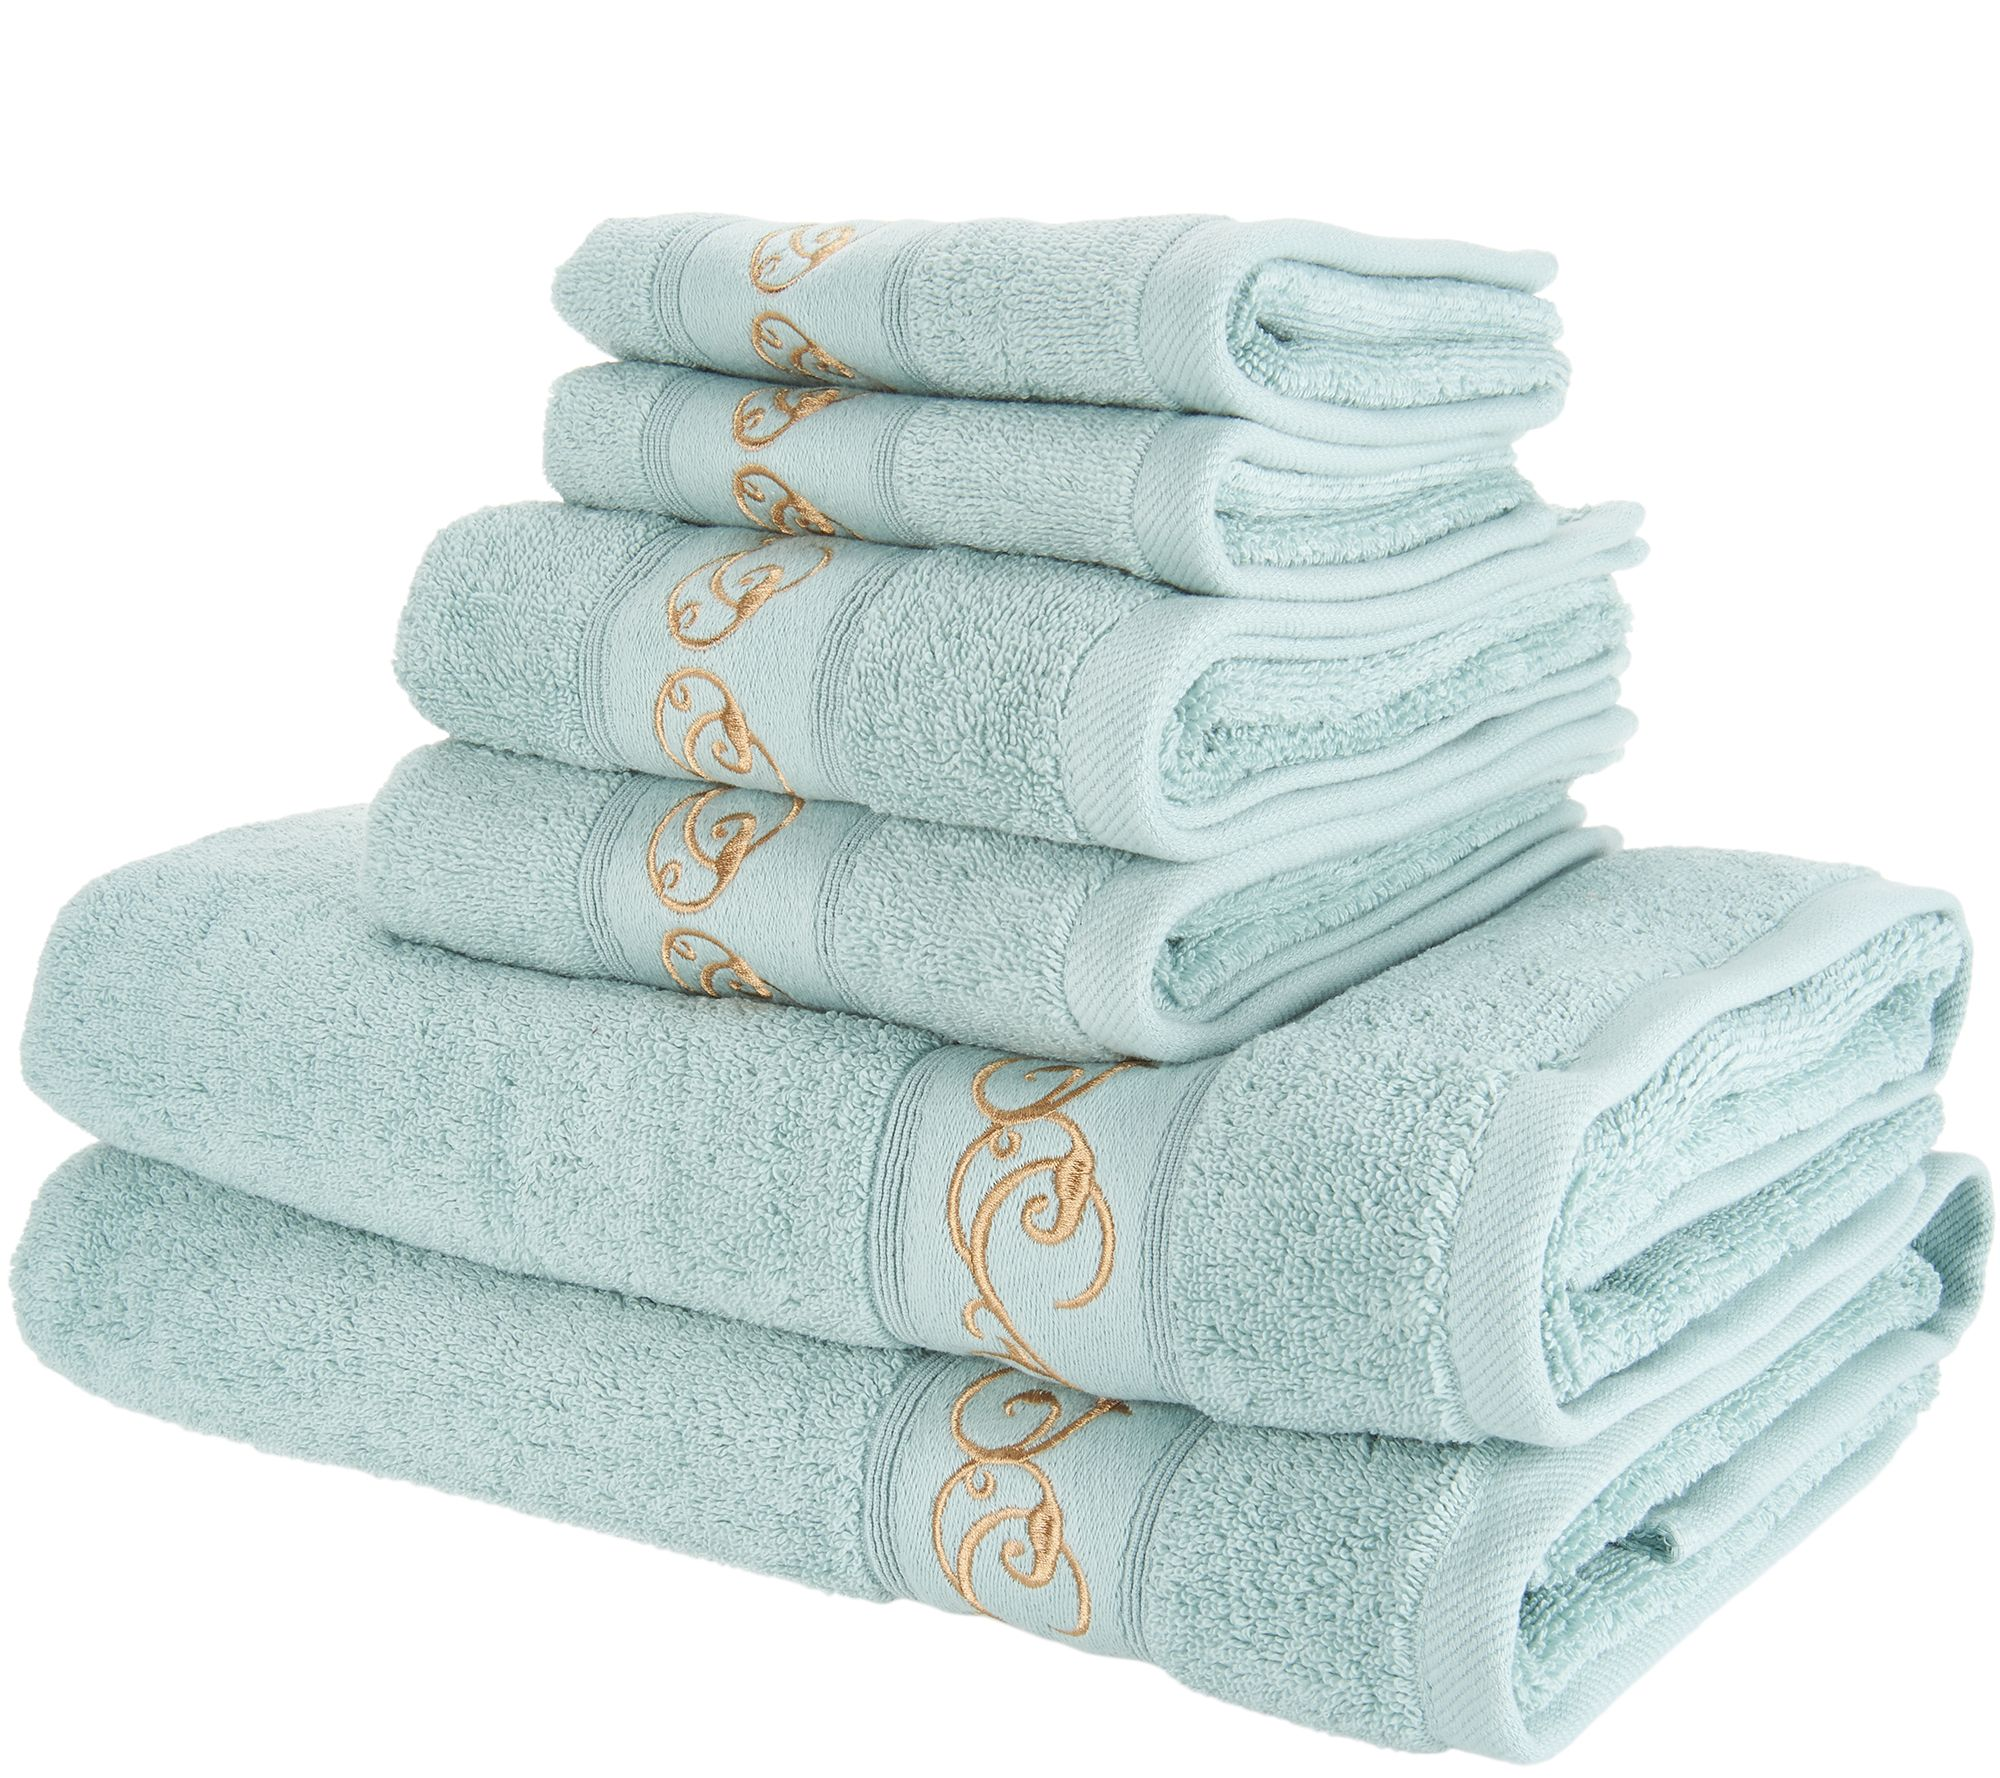 Casa Zeta Jones 6 Piece 100% Cotton Embroidered Towel Set   Page 1 U2014 QVC.com